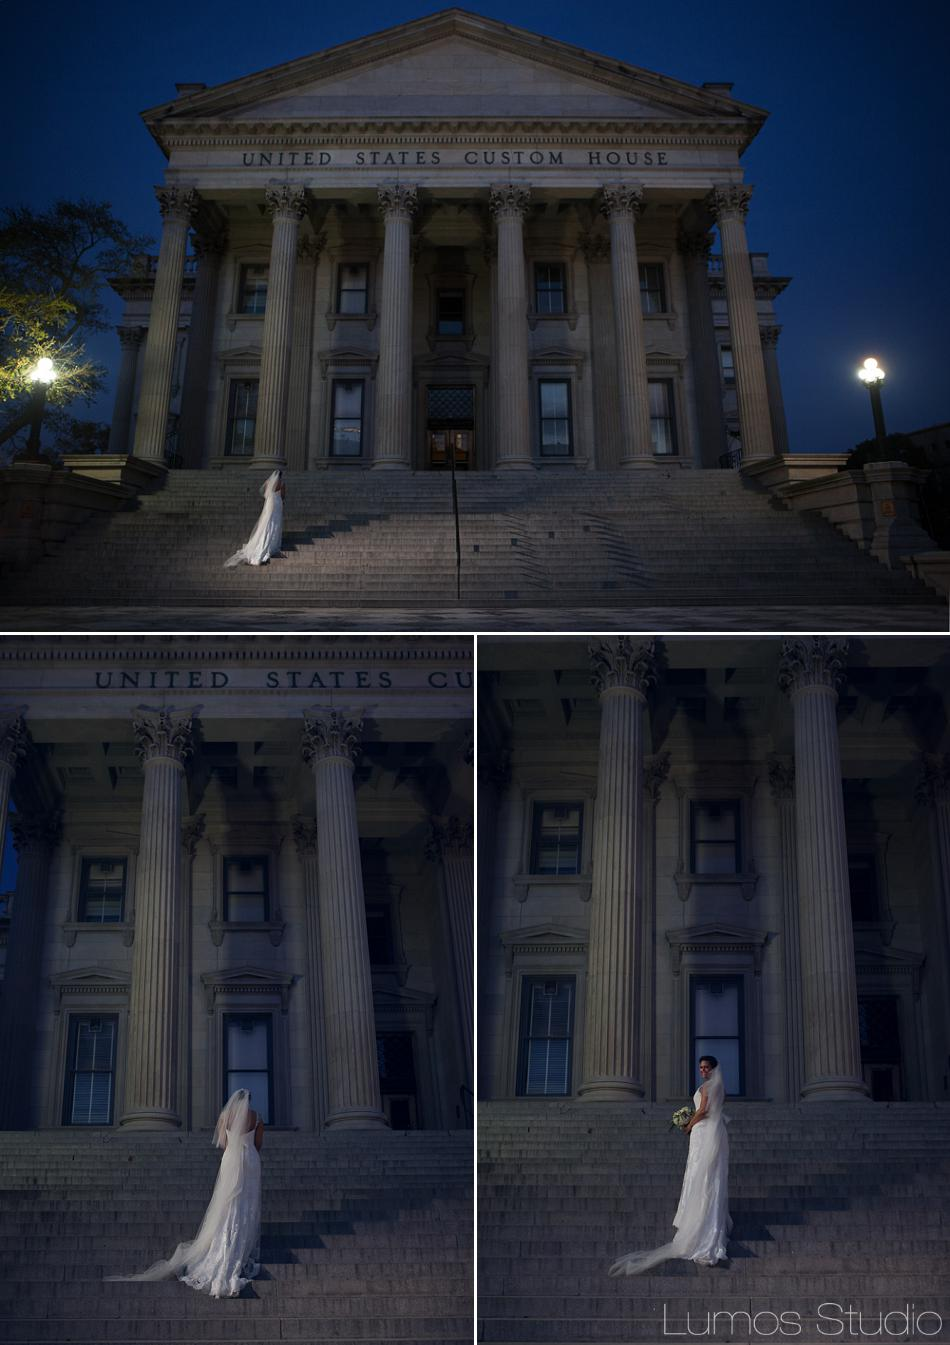 Ana at the Custom House at night